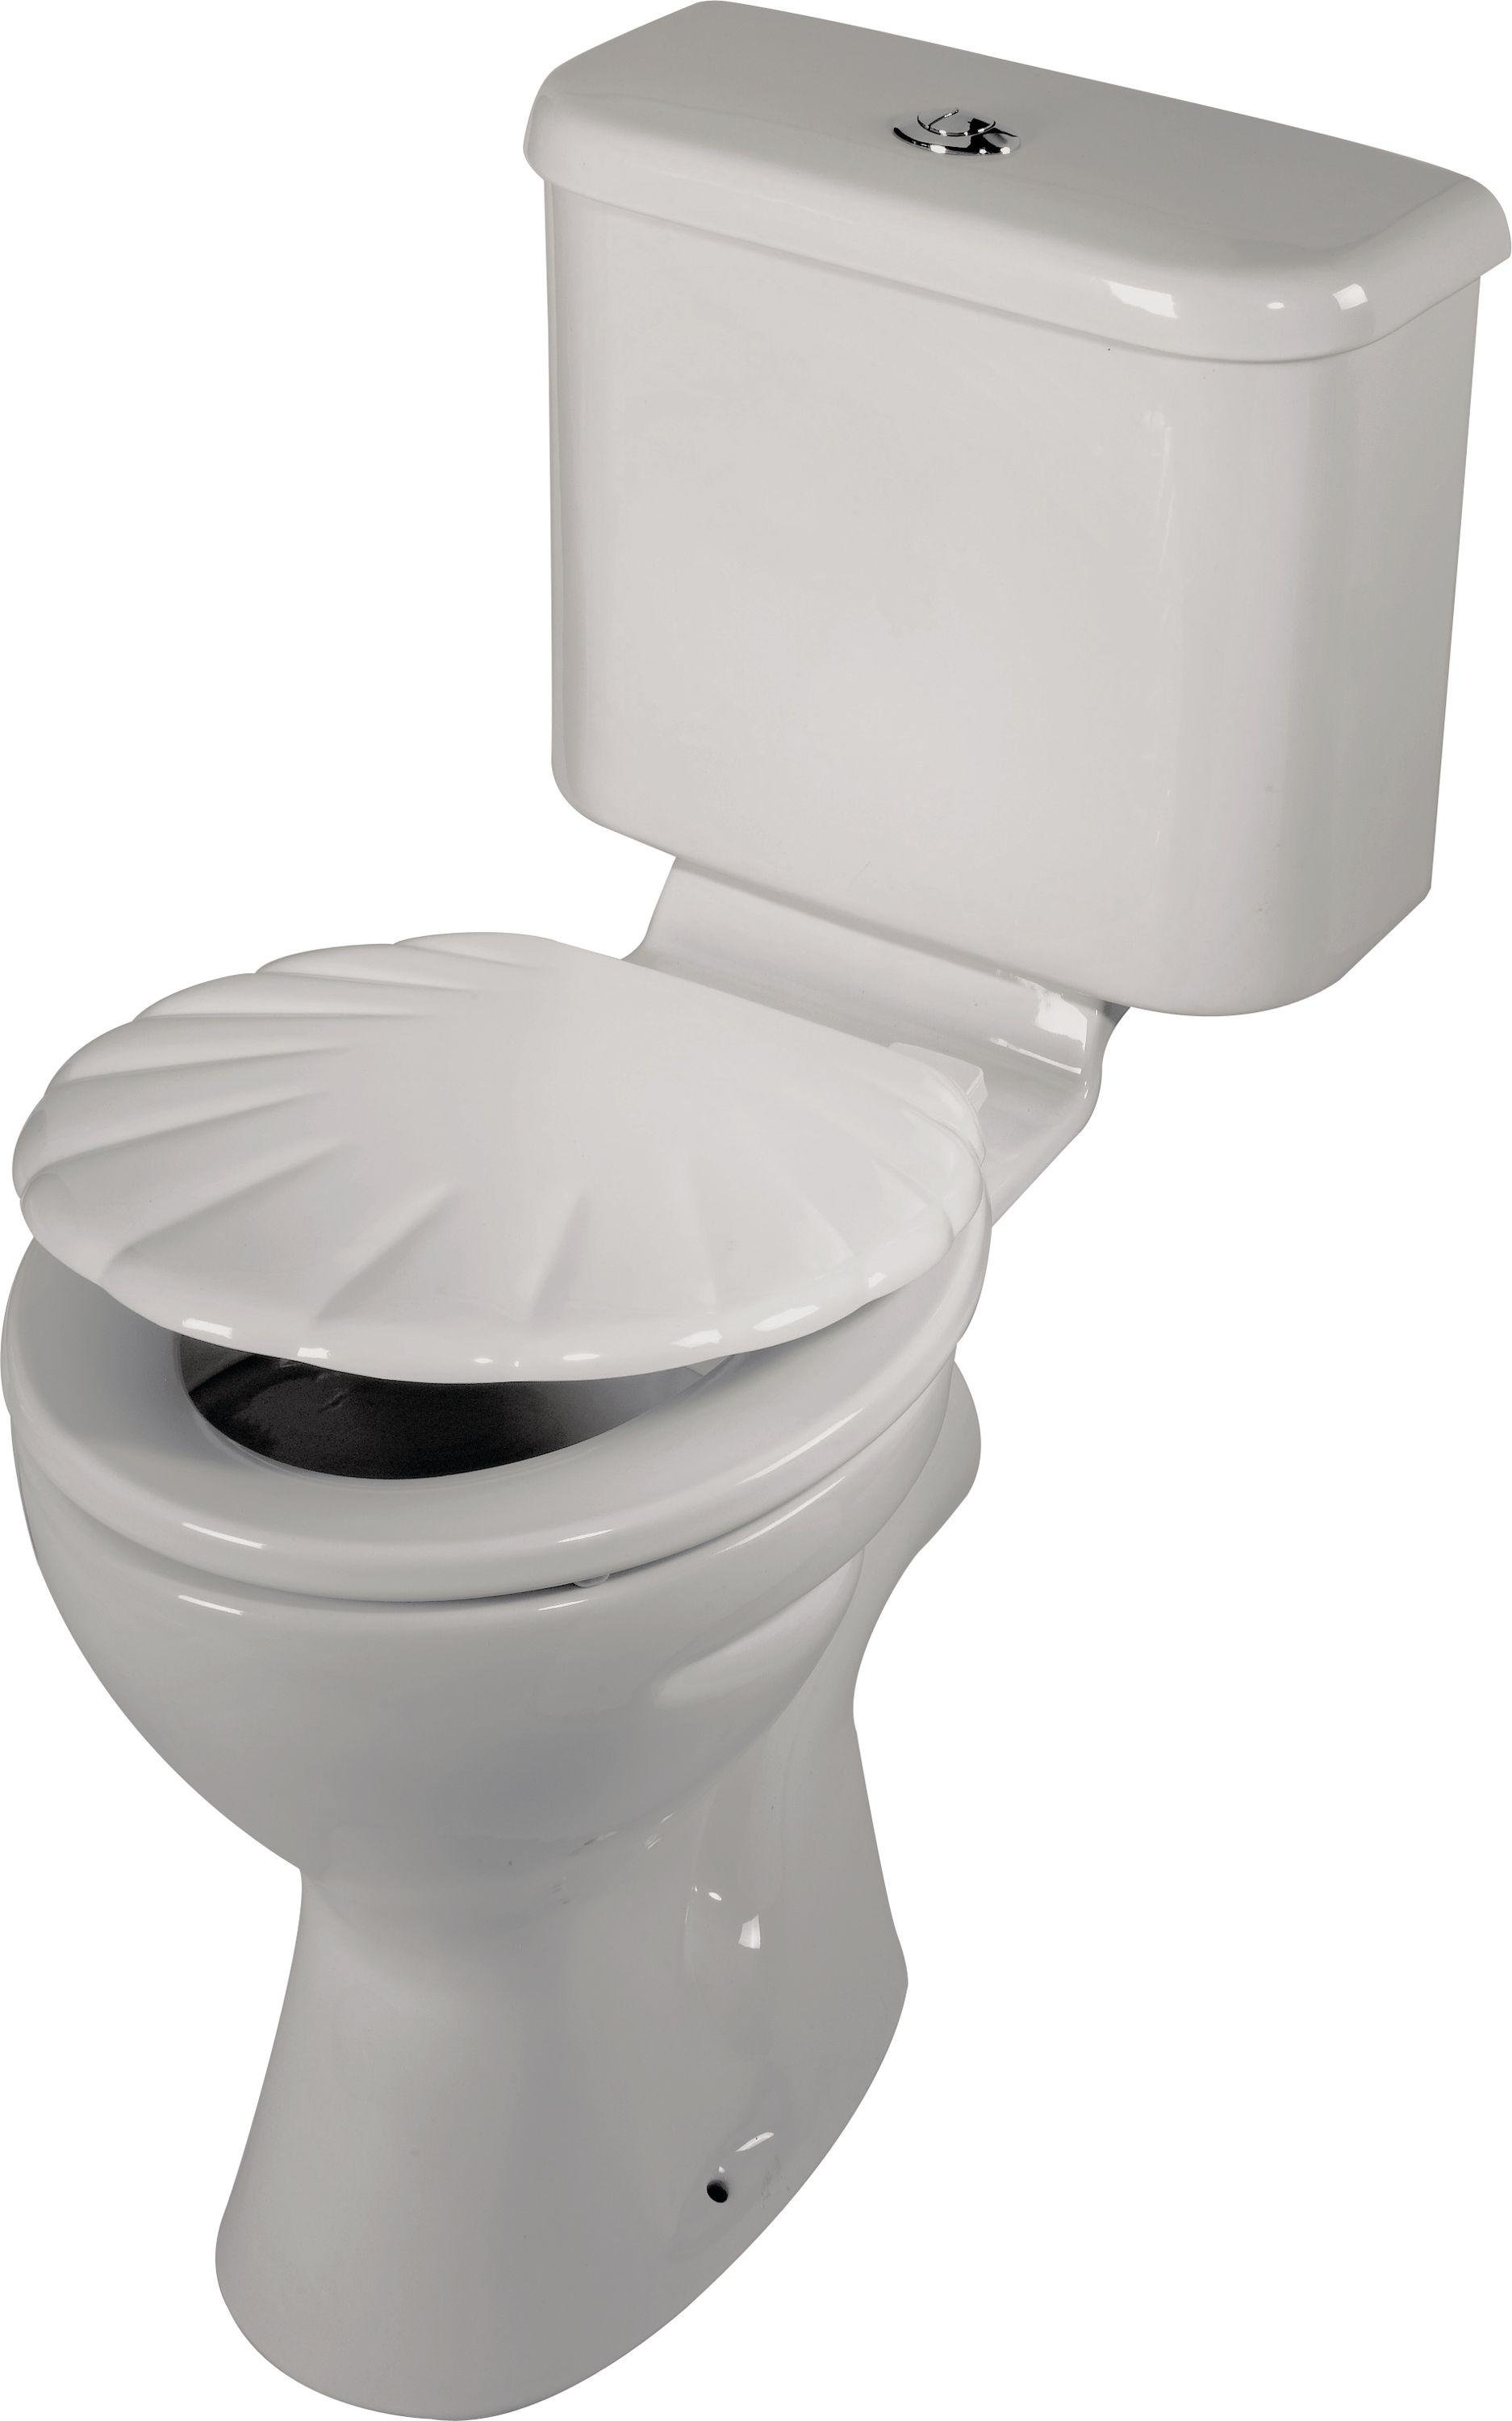 home moulded wood shell toilet seat